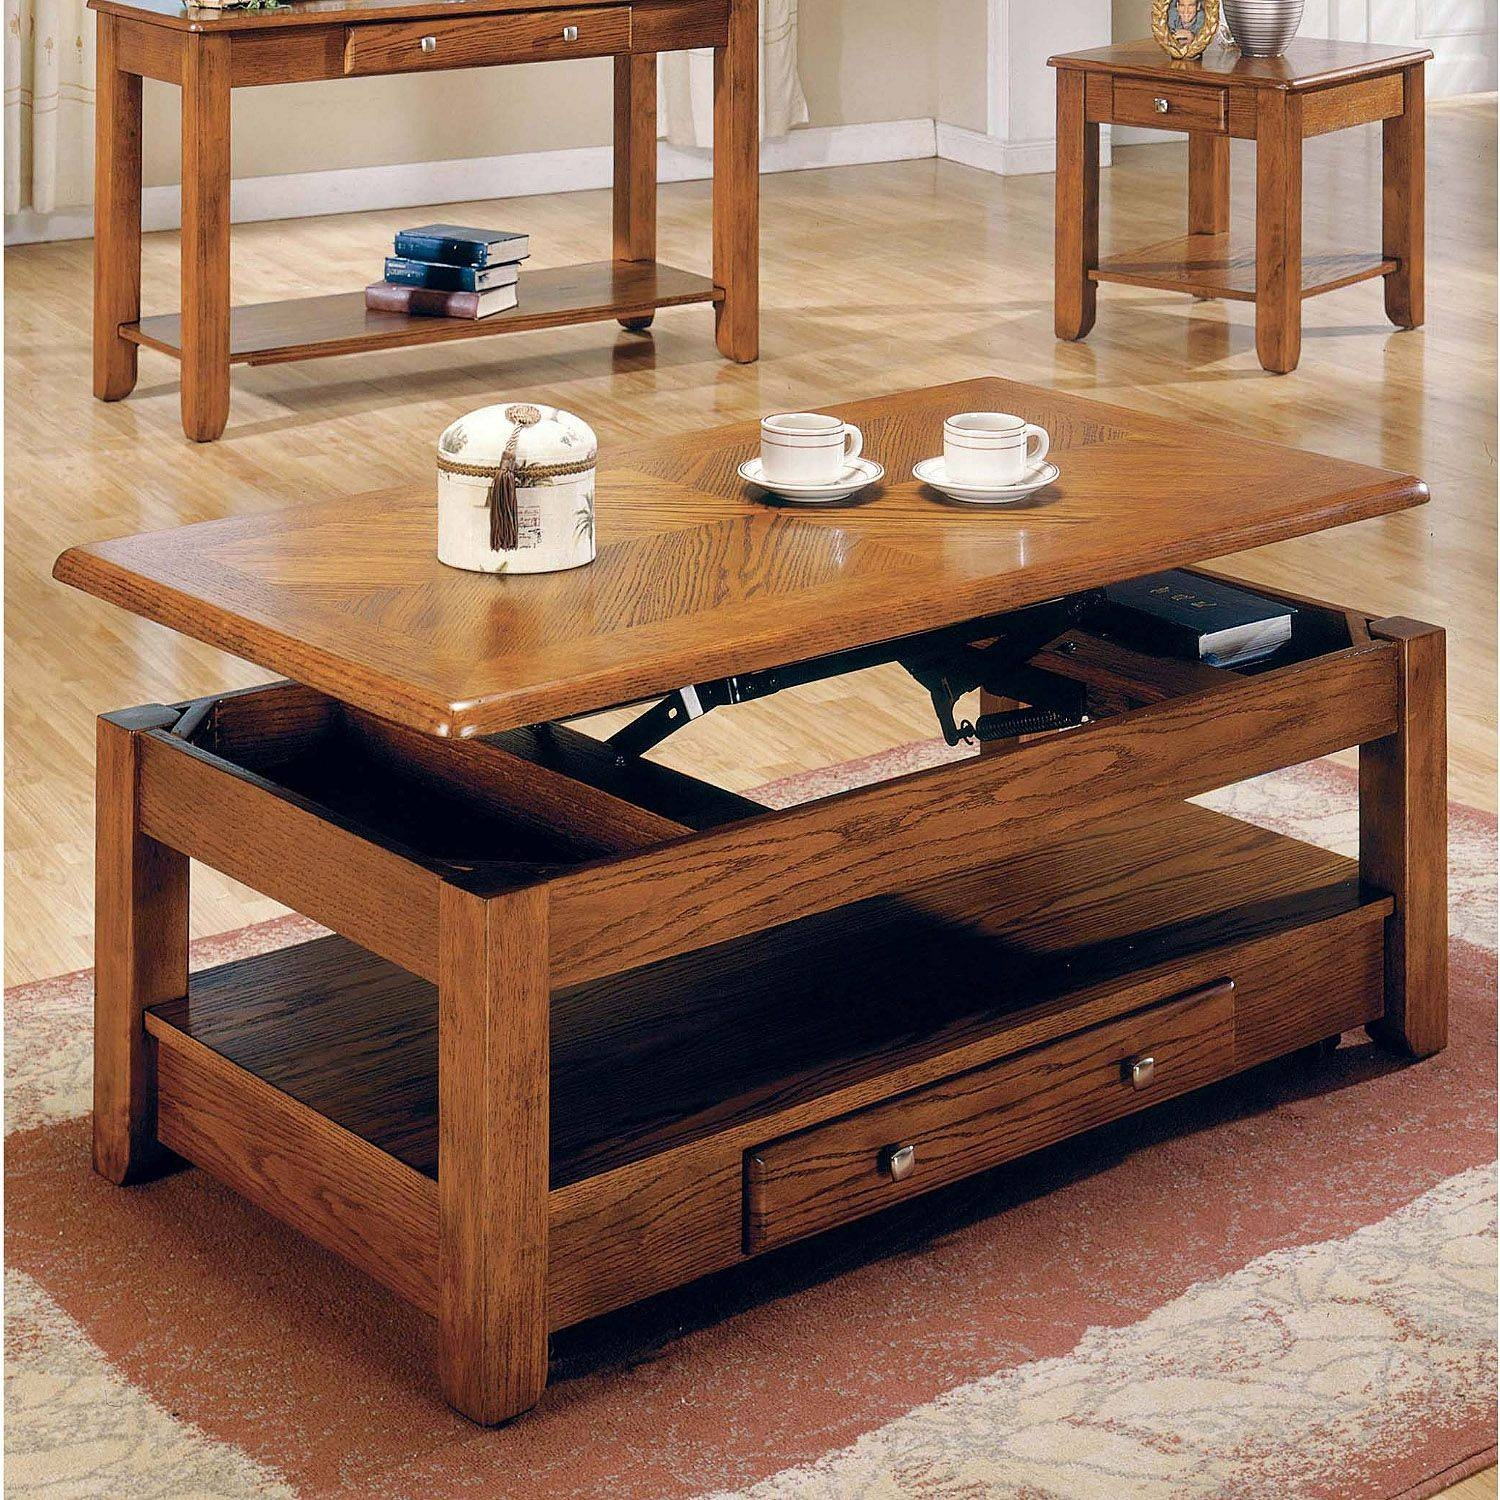 Dining Coffee Table Combination | Coffee Tables Decoration Intended For Raise Up Coffee Tables (View 10 of 30)